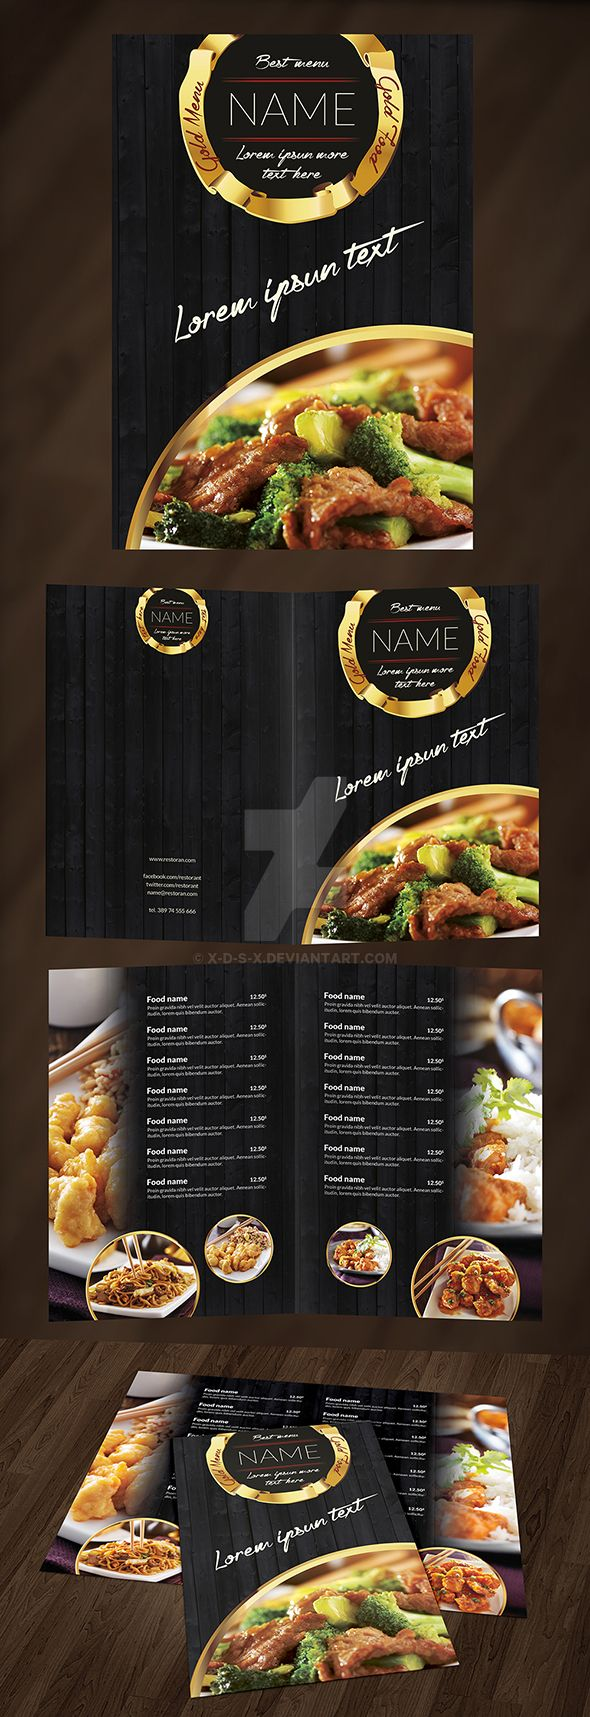 Gold food menu by x d s x on deviantart for Artistic cuisine menu